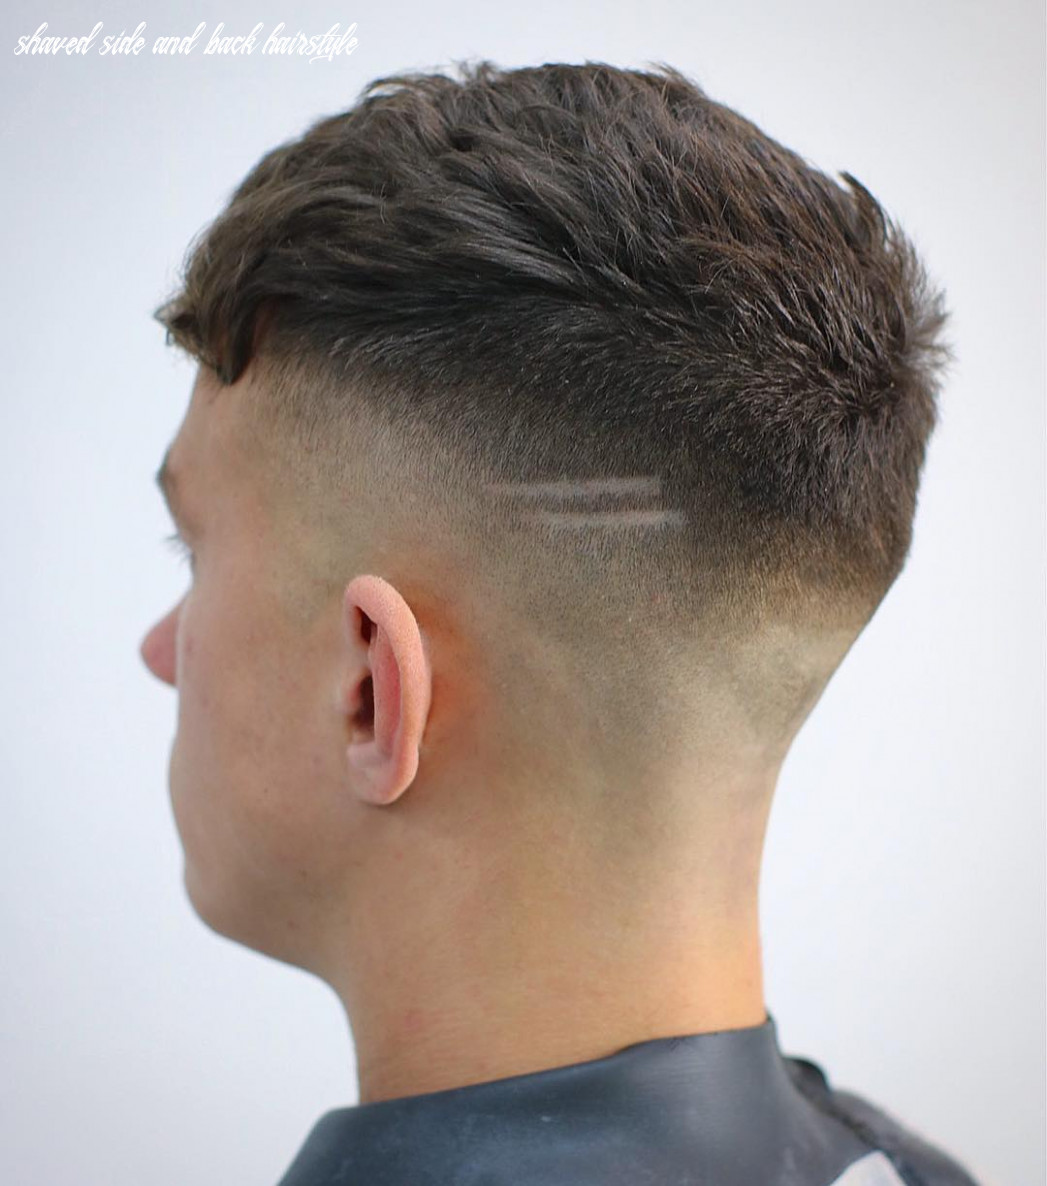 Shaved sides haircuts > 11 cool fade styles for 11 shaved side and back hairstyle